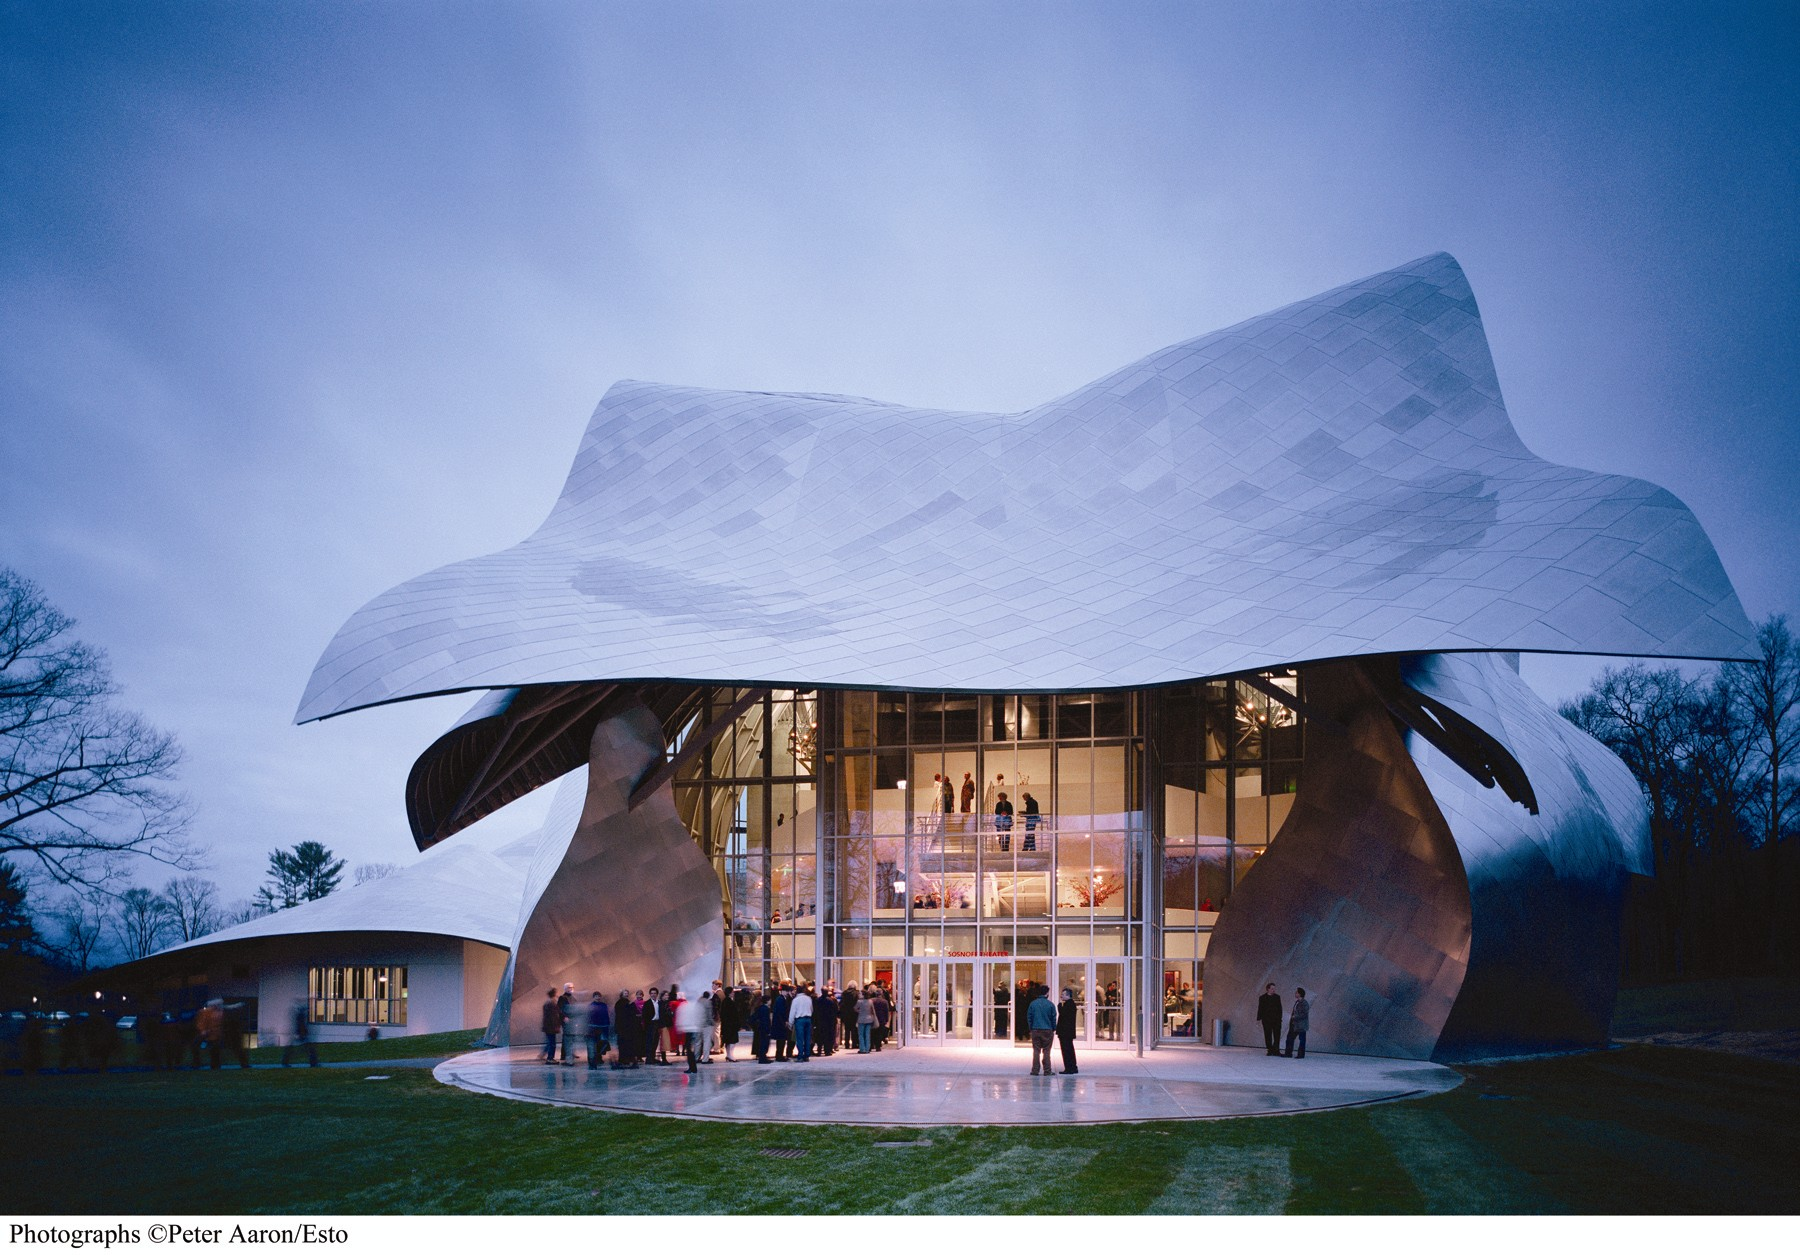 Frank Gehry's Disney Concert Hall in Los Angeles is certainly a star, though he made waves at Bard College with the Fisher Center long before. Photo by Peter Aaron.